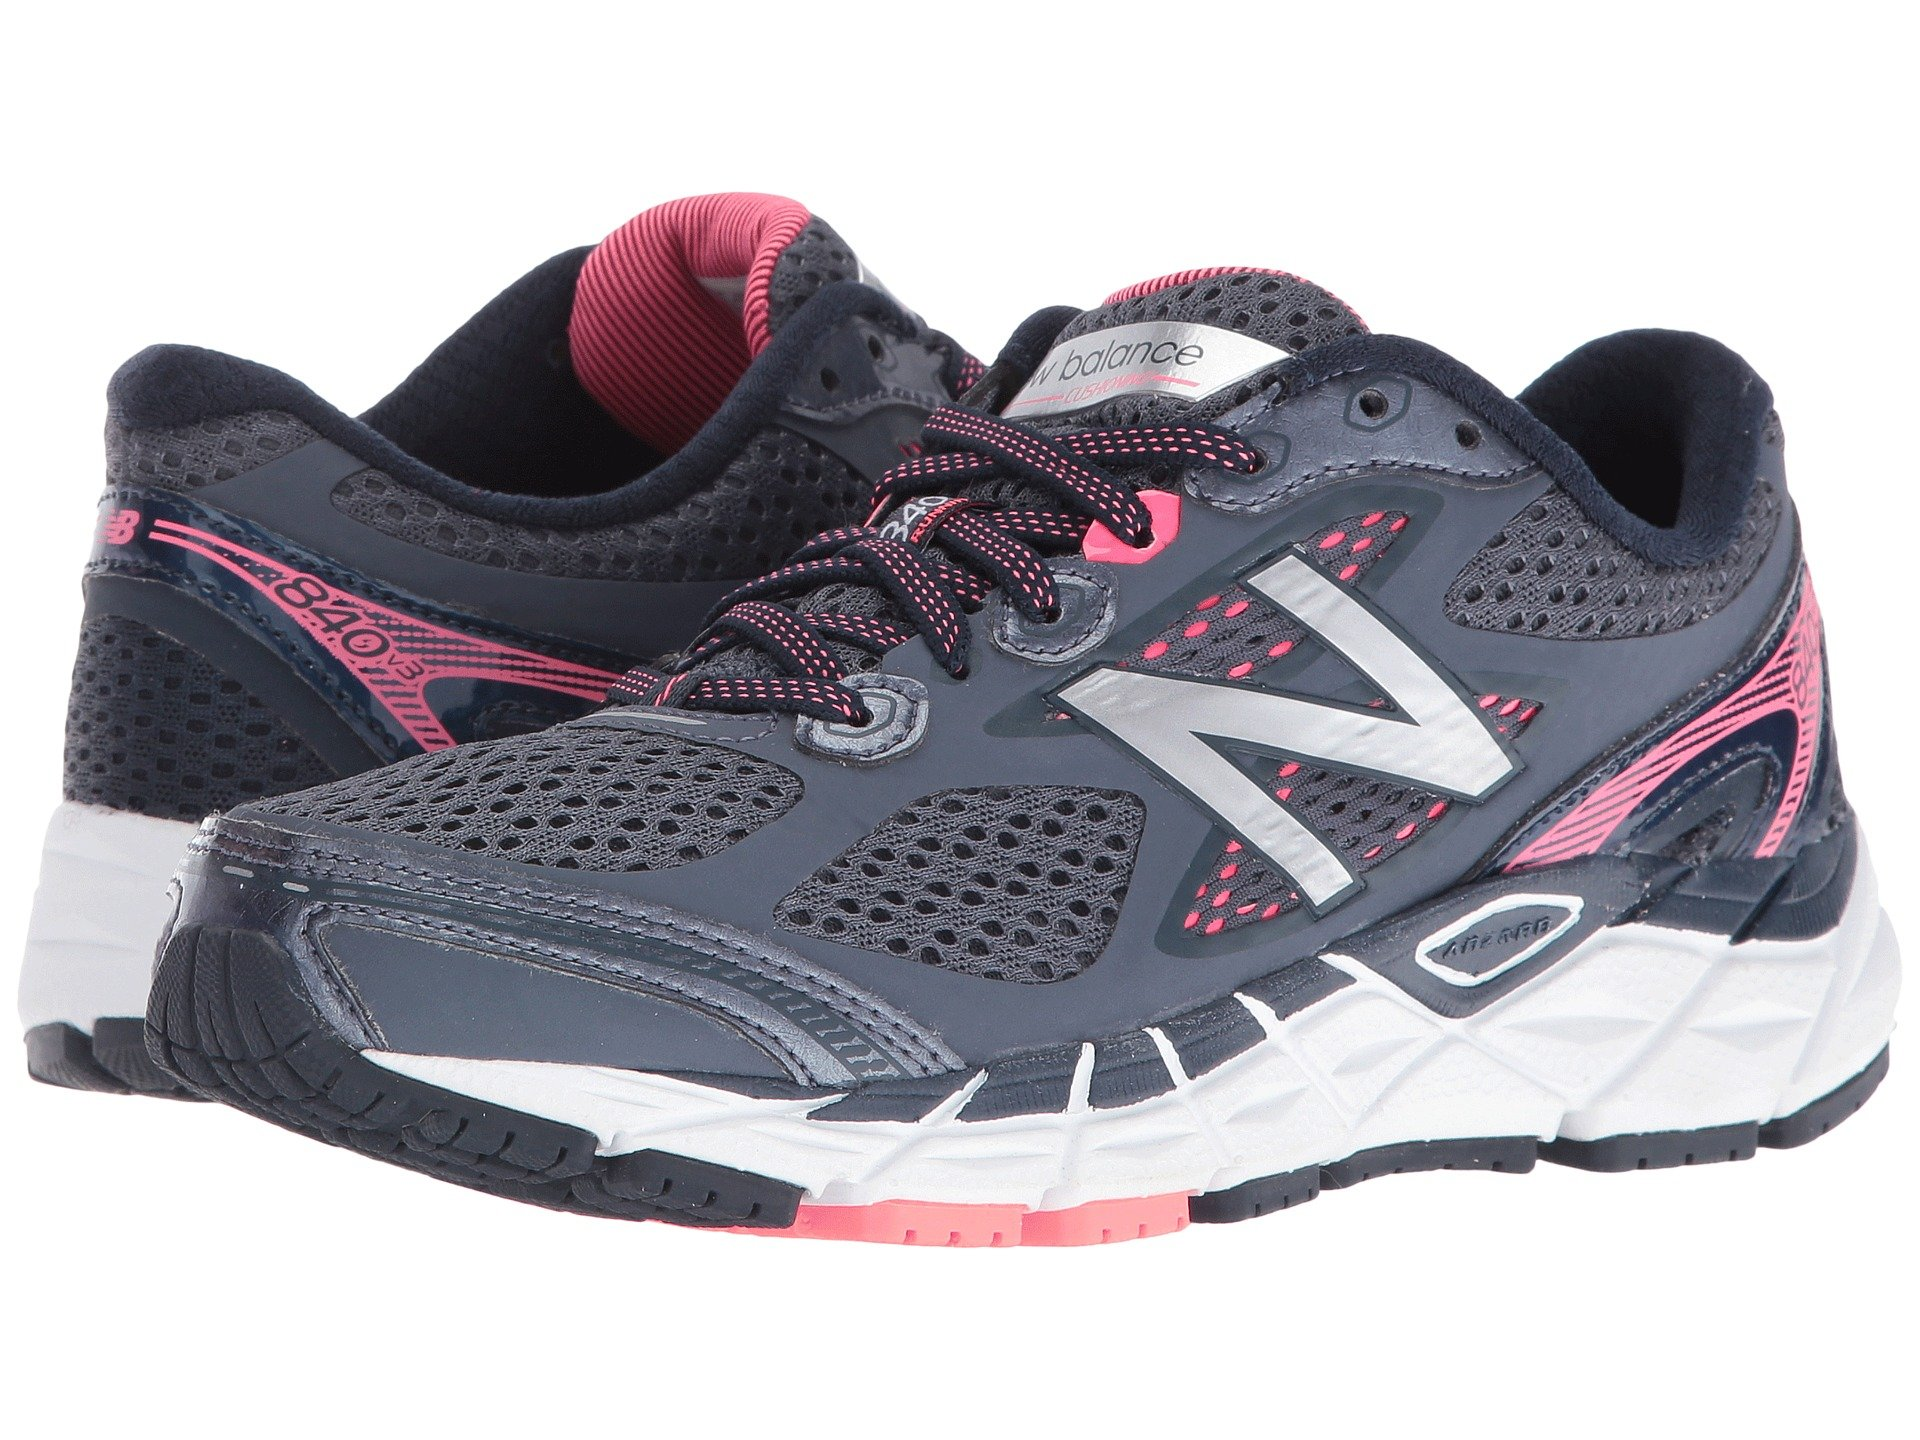 New Balance Boys Shoes Wide Size